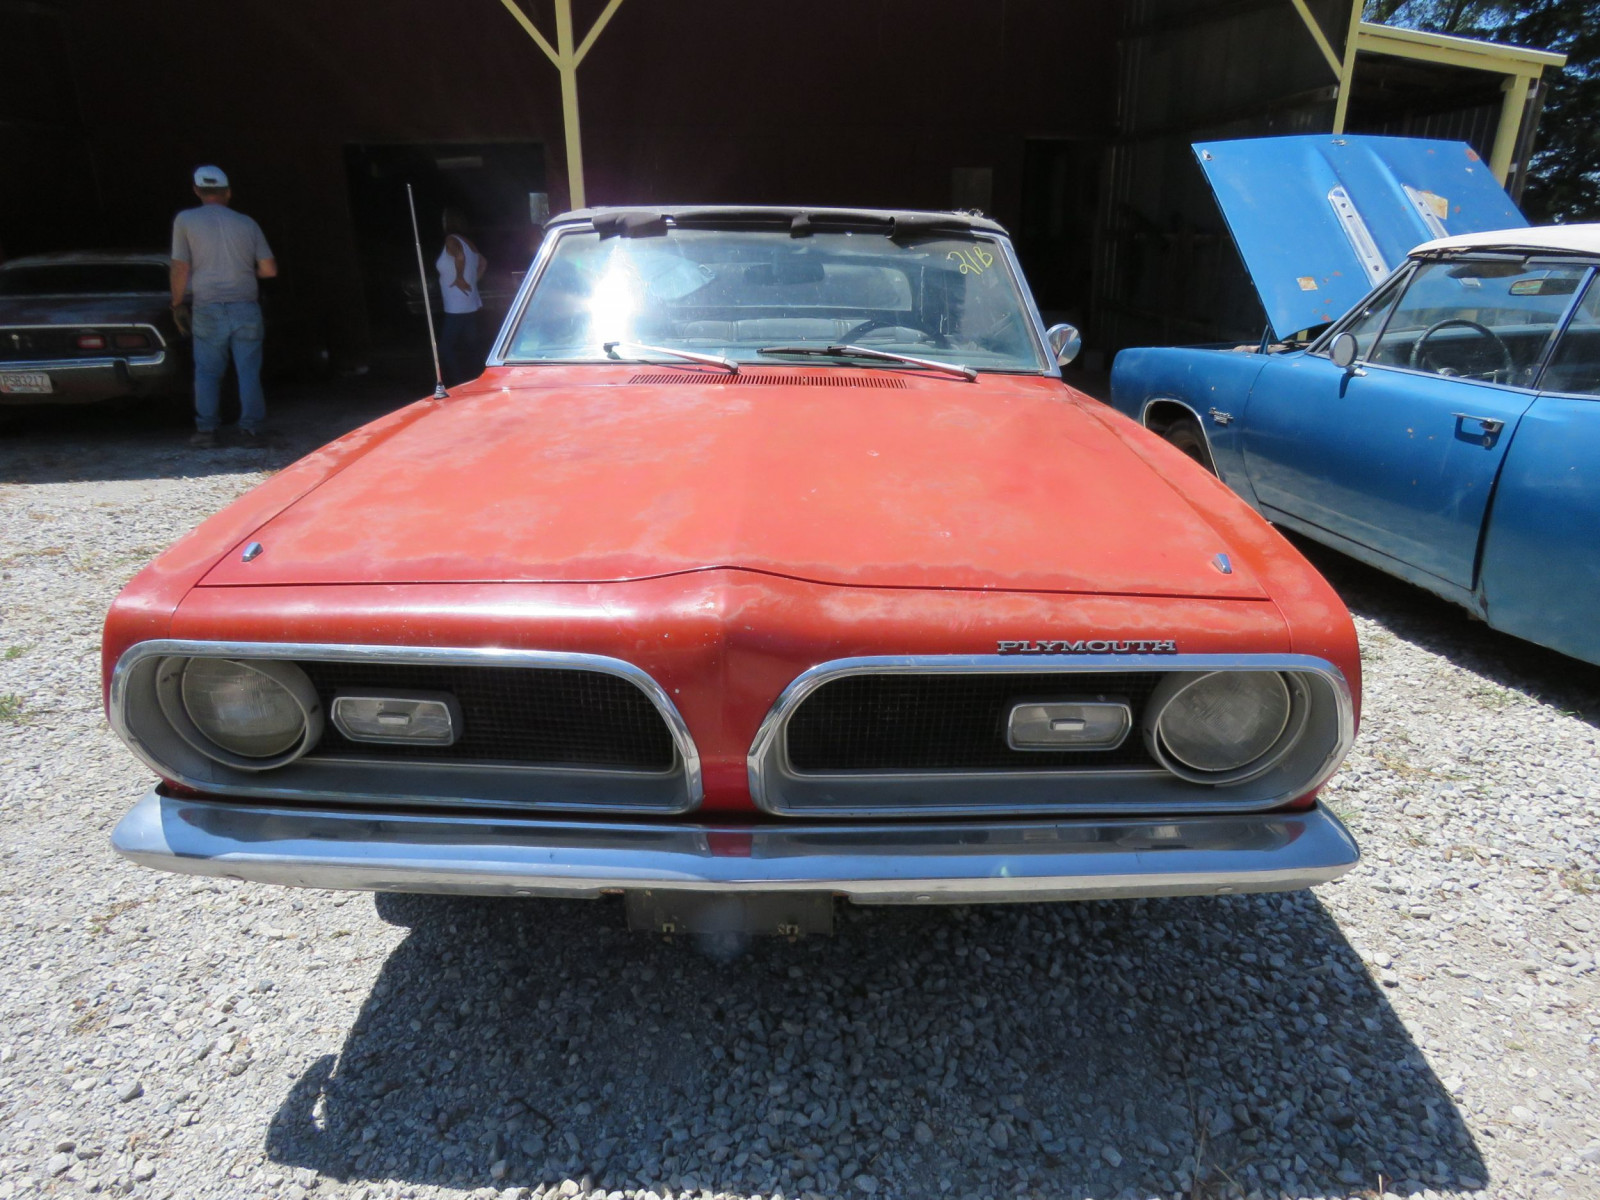 1969 Plymouth Barracuda Convertible - Image 2